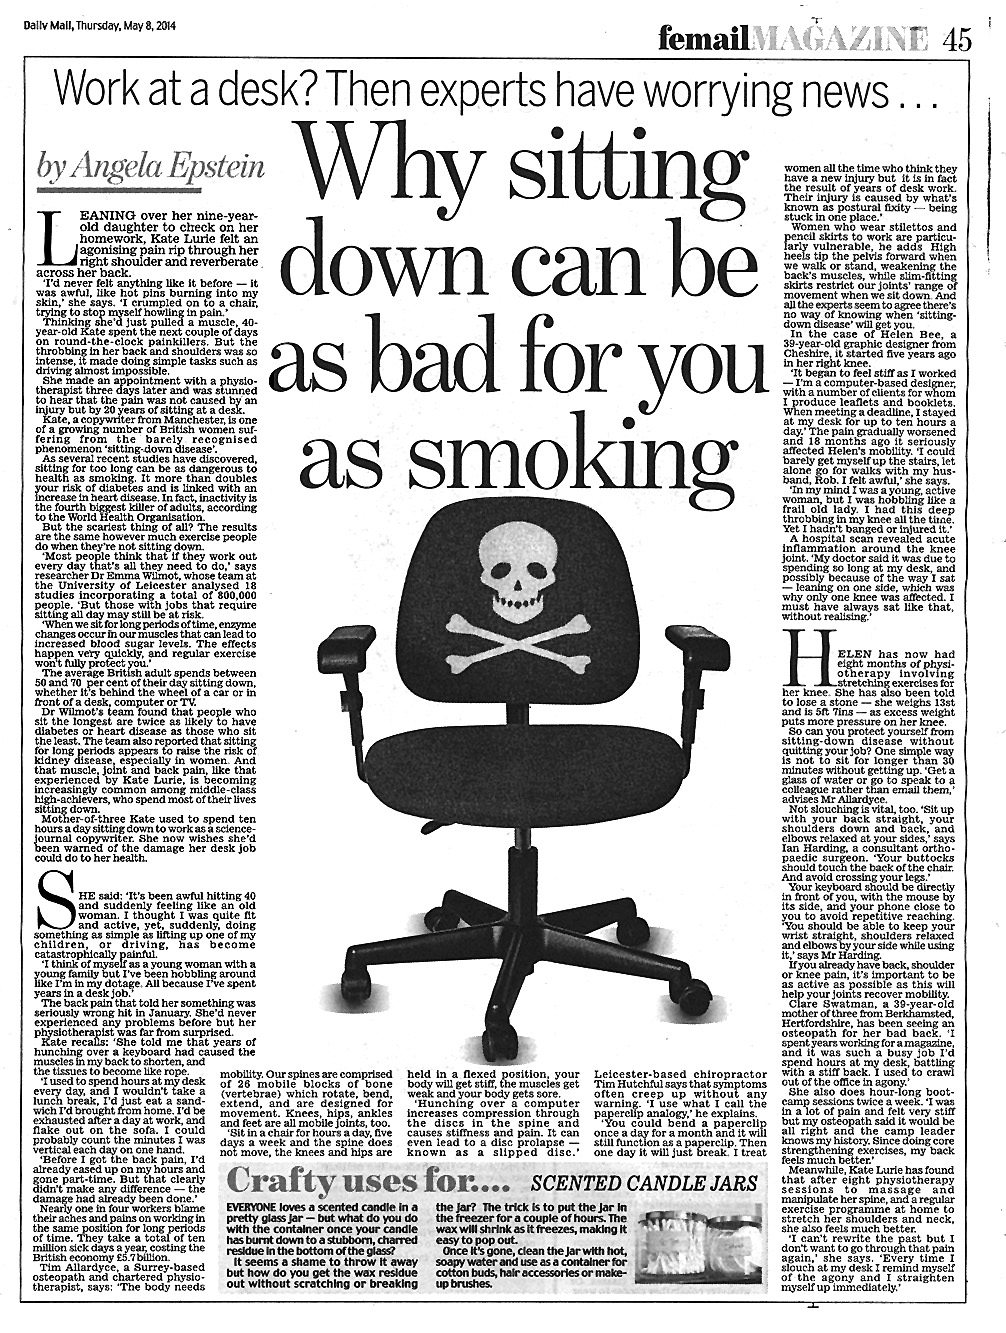 Why sitting down can be as bad for you as smoking